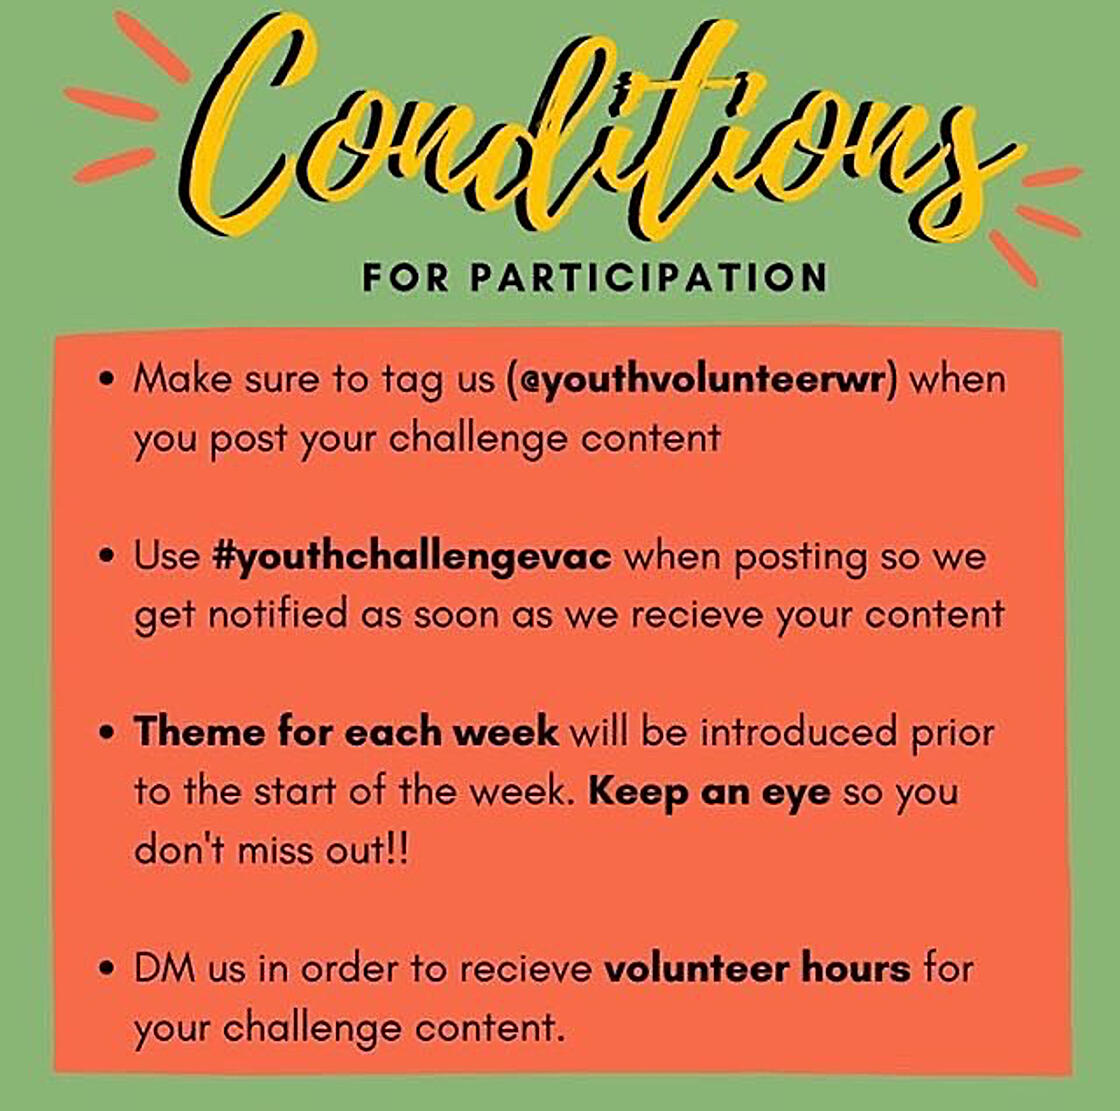 tag @youthvolunteerwr if you want to enter the youth challenge from VAC